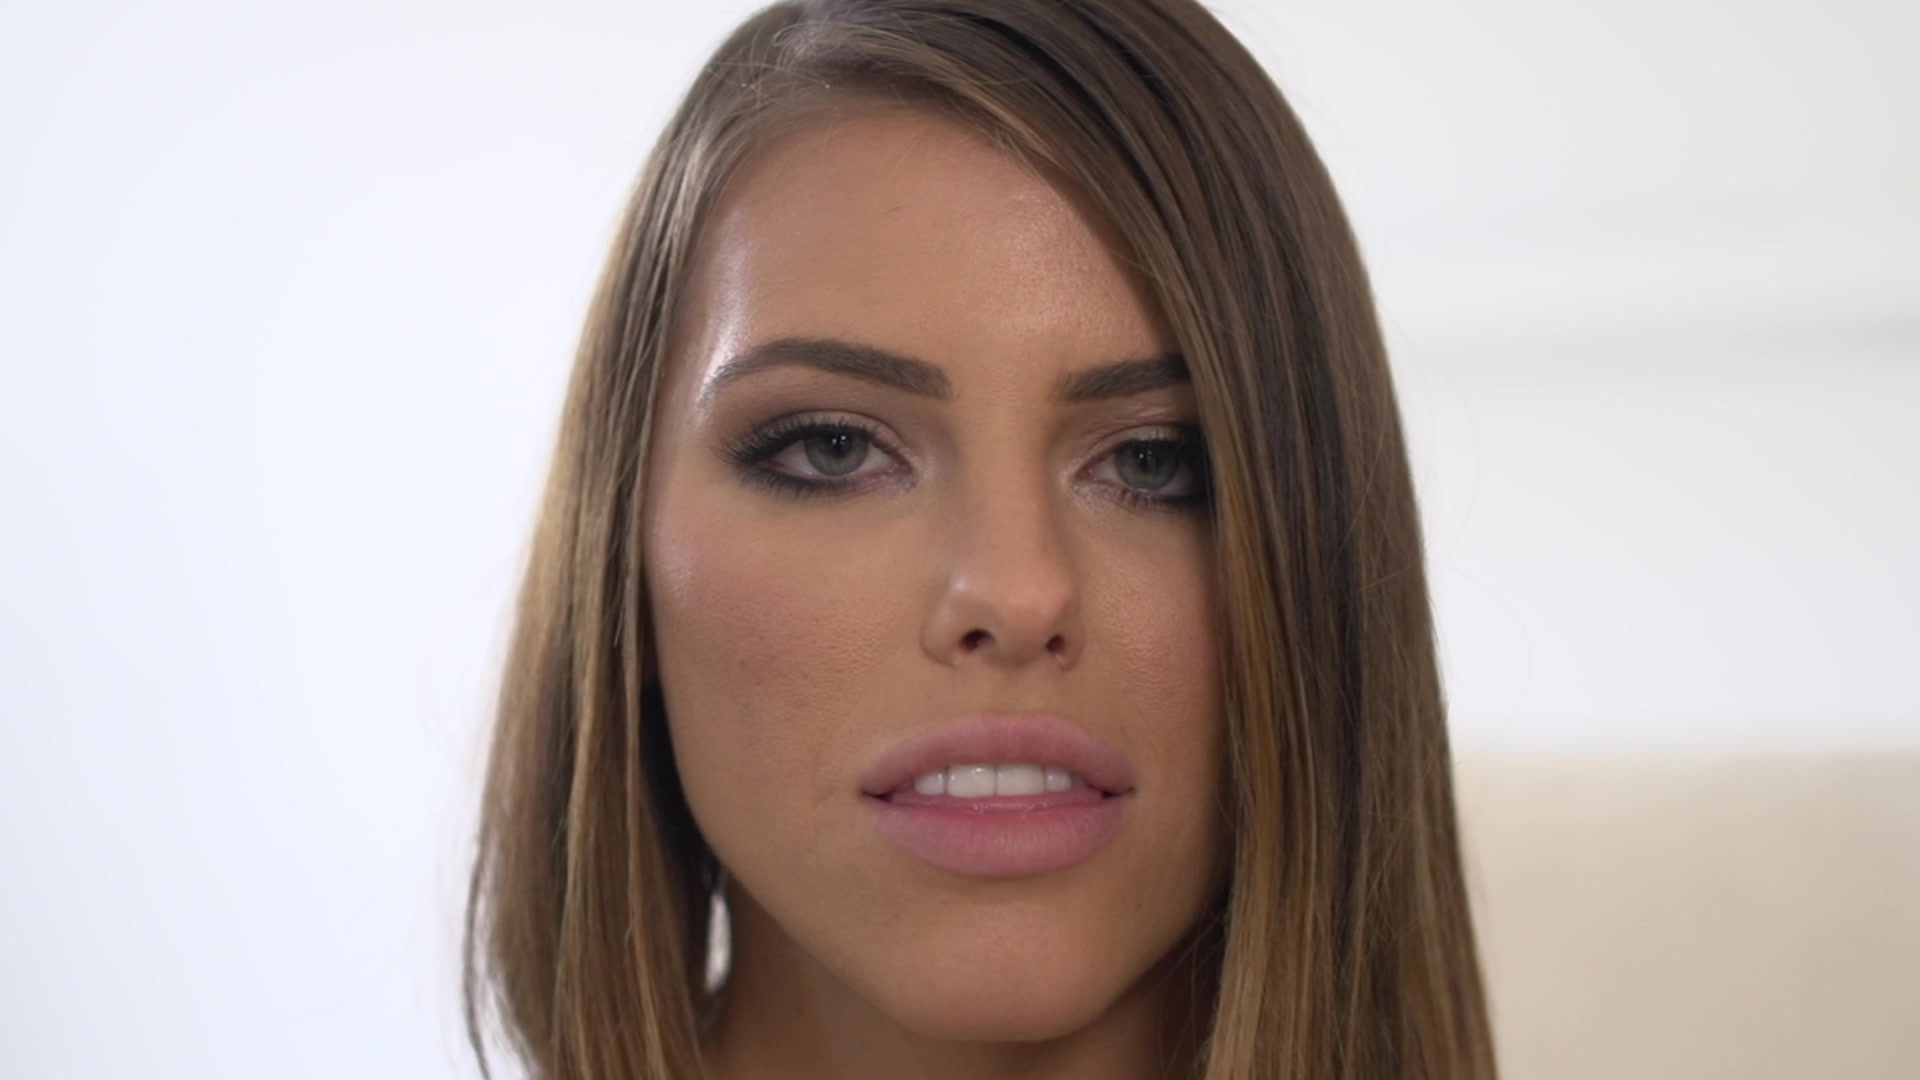 Scene with Adriana Chechik and Aubrey Kate - image 1 out of 20